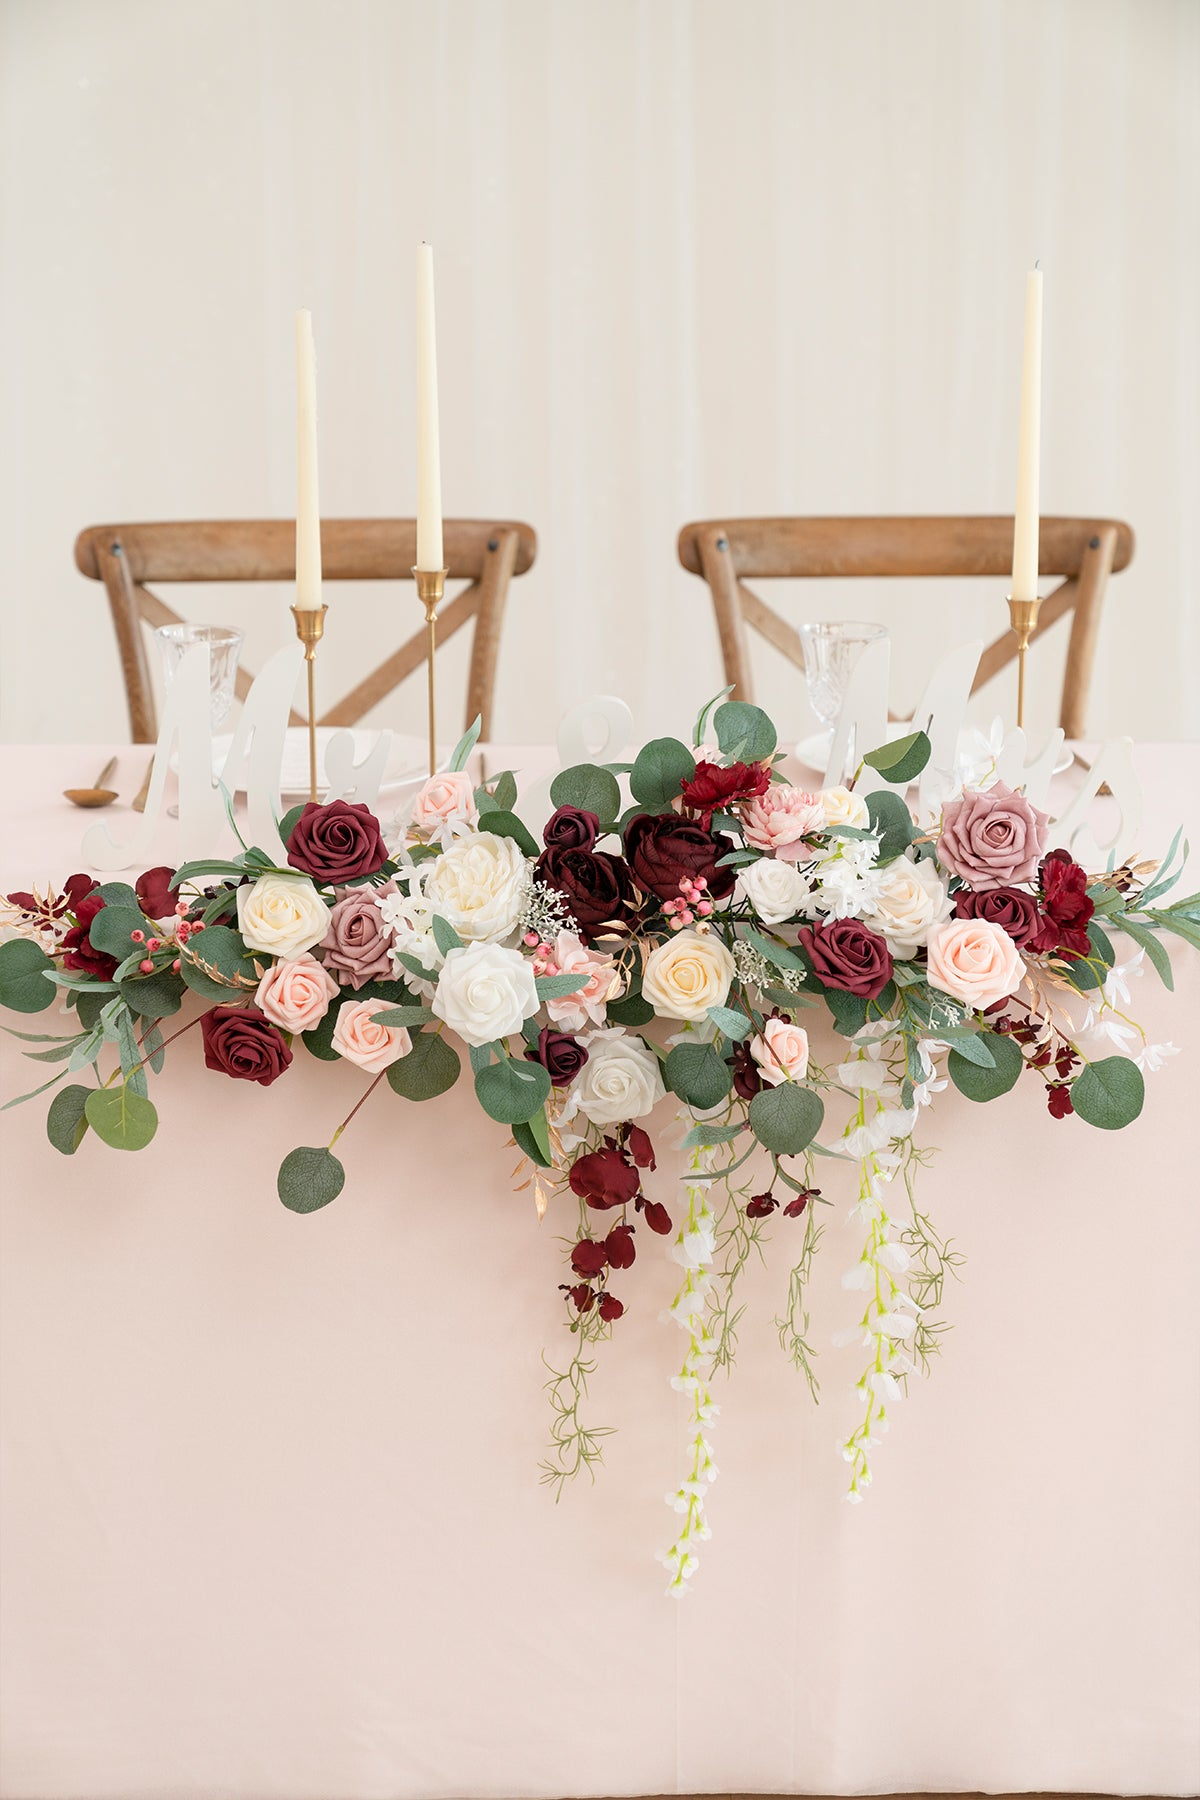 Flower Swag and Tablecloth for Sweetheart Table - Burgundy